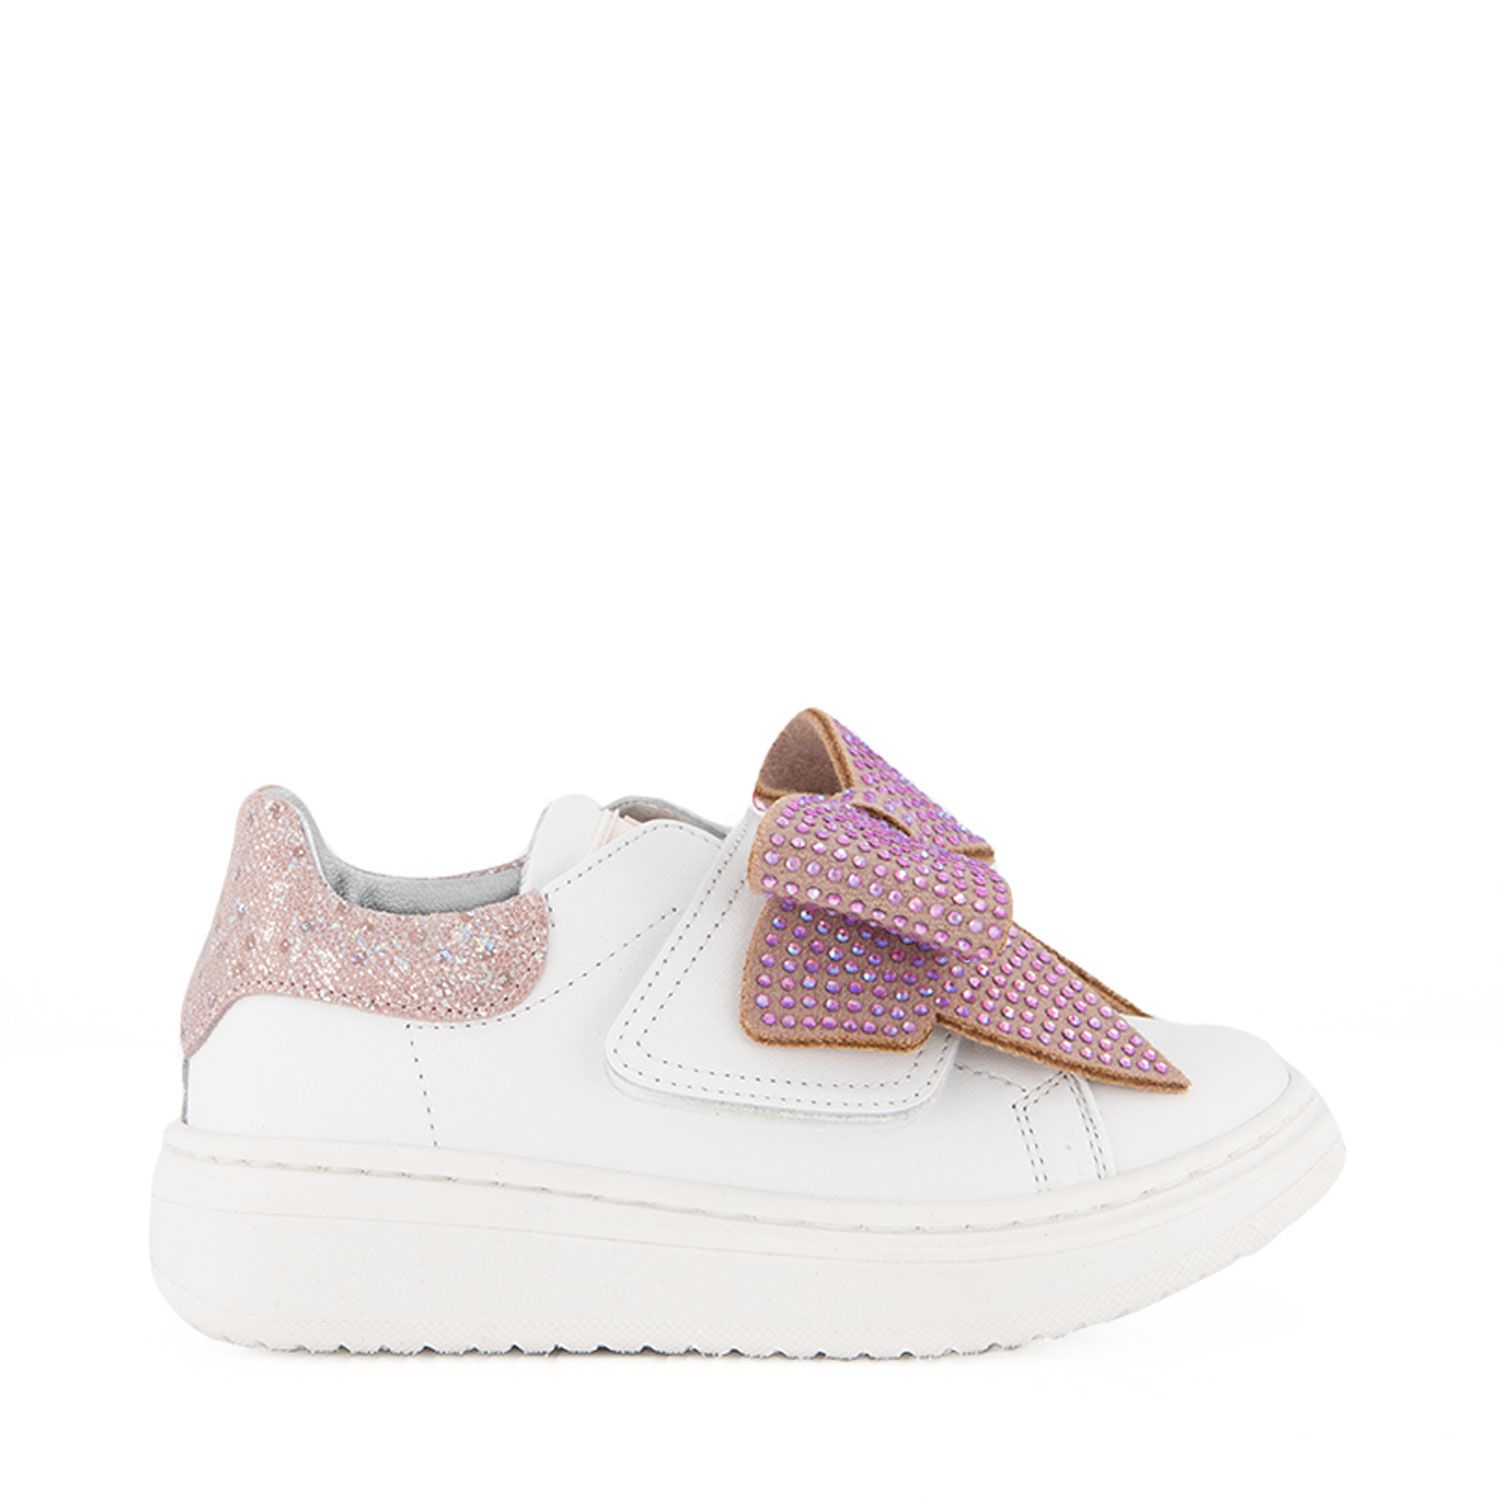 Picture of MonnaLisa 838005 kids sneakers white